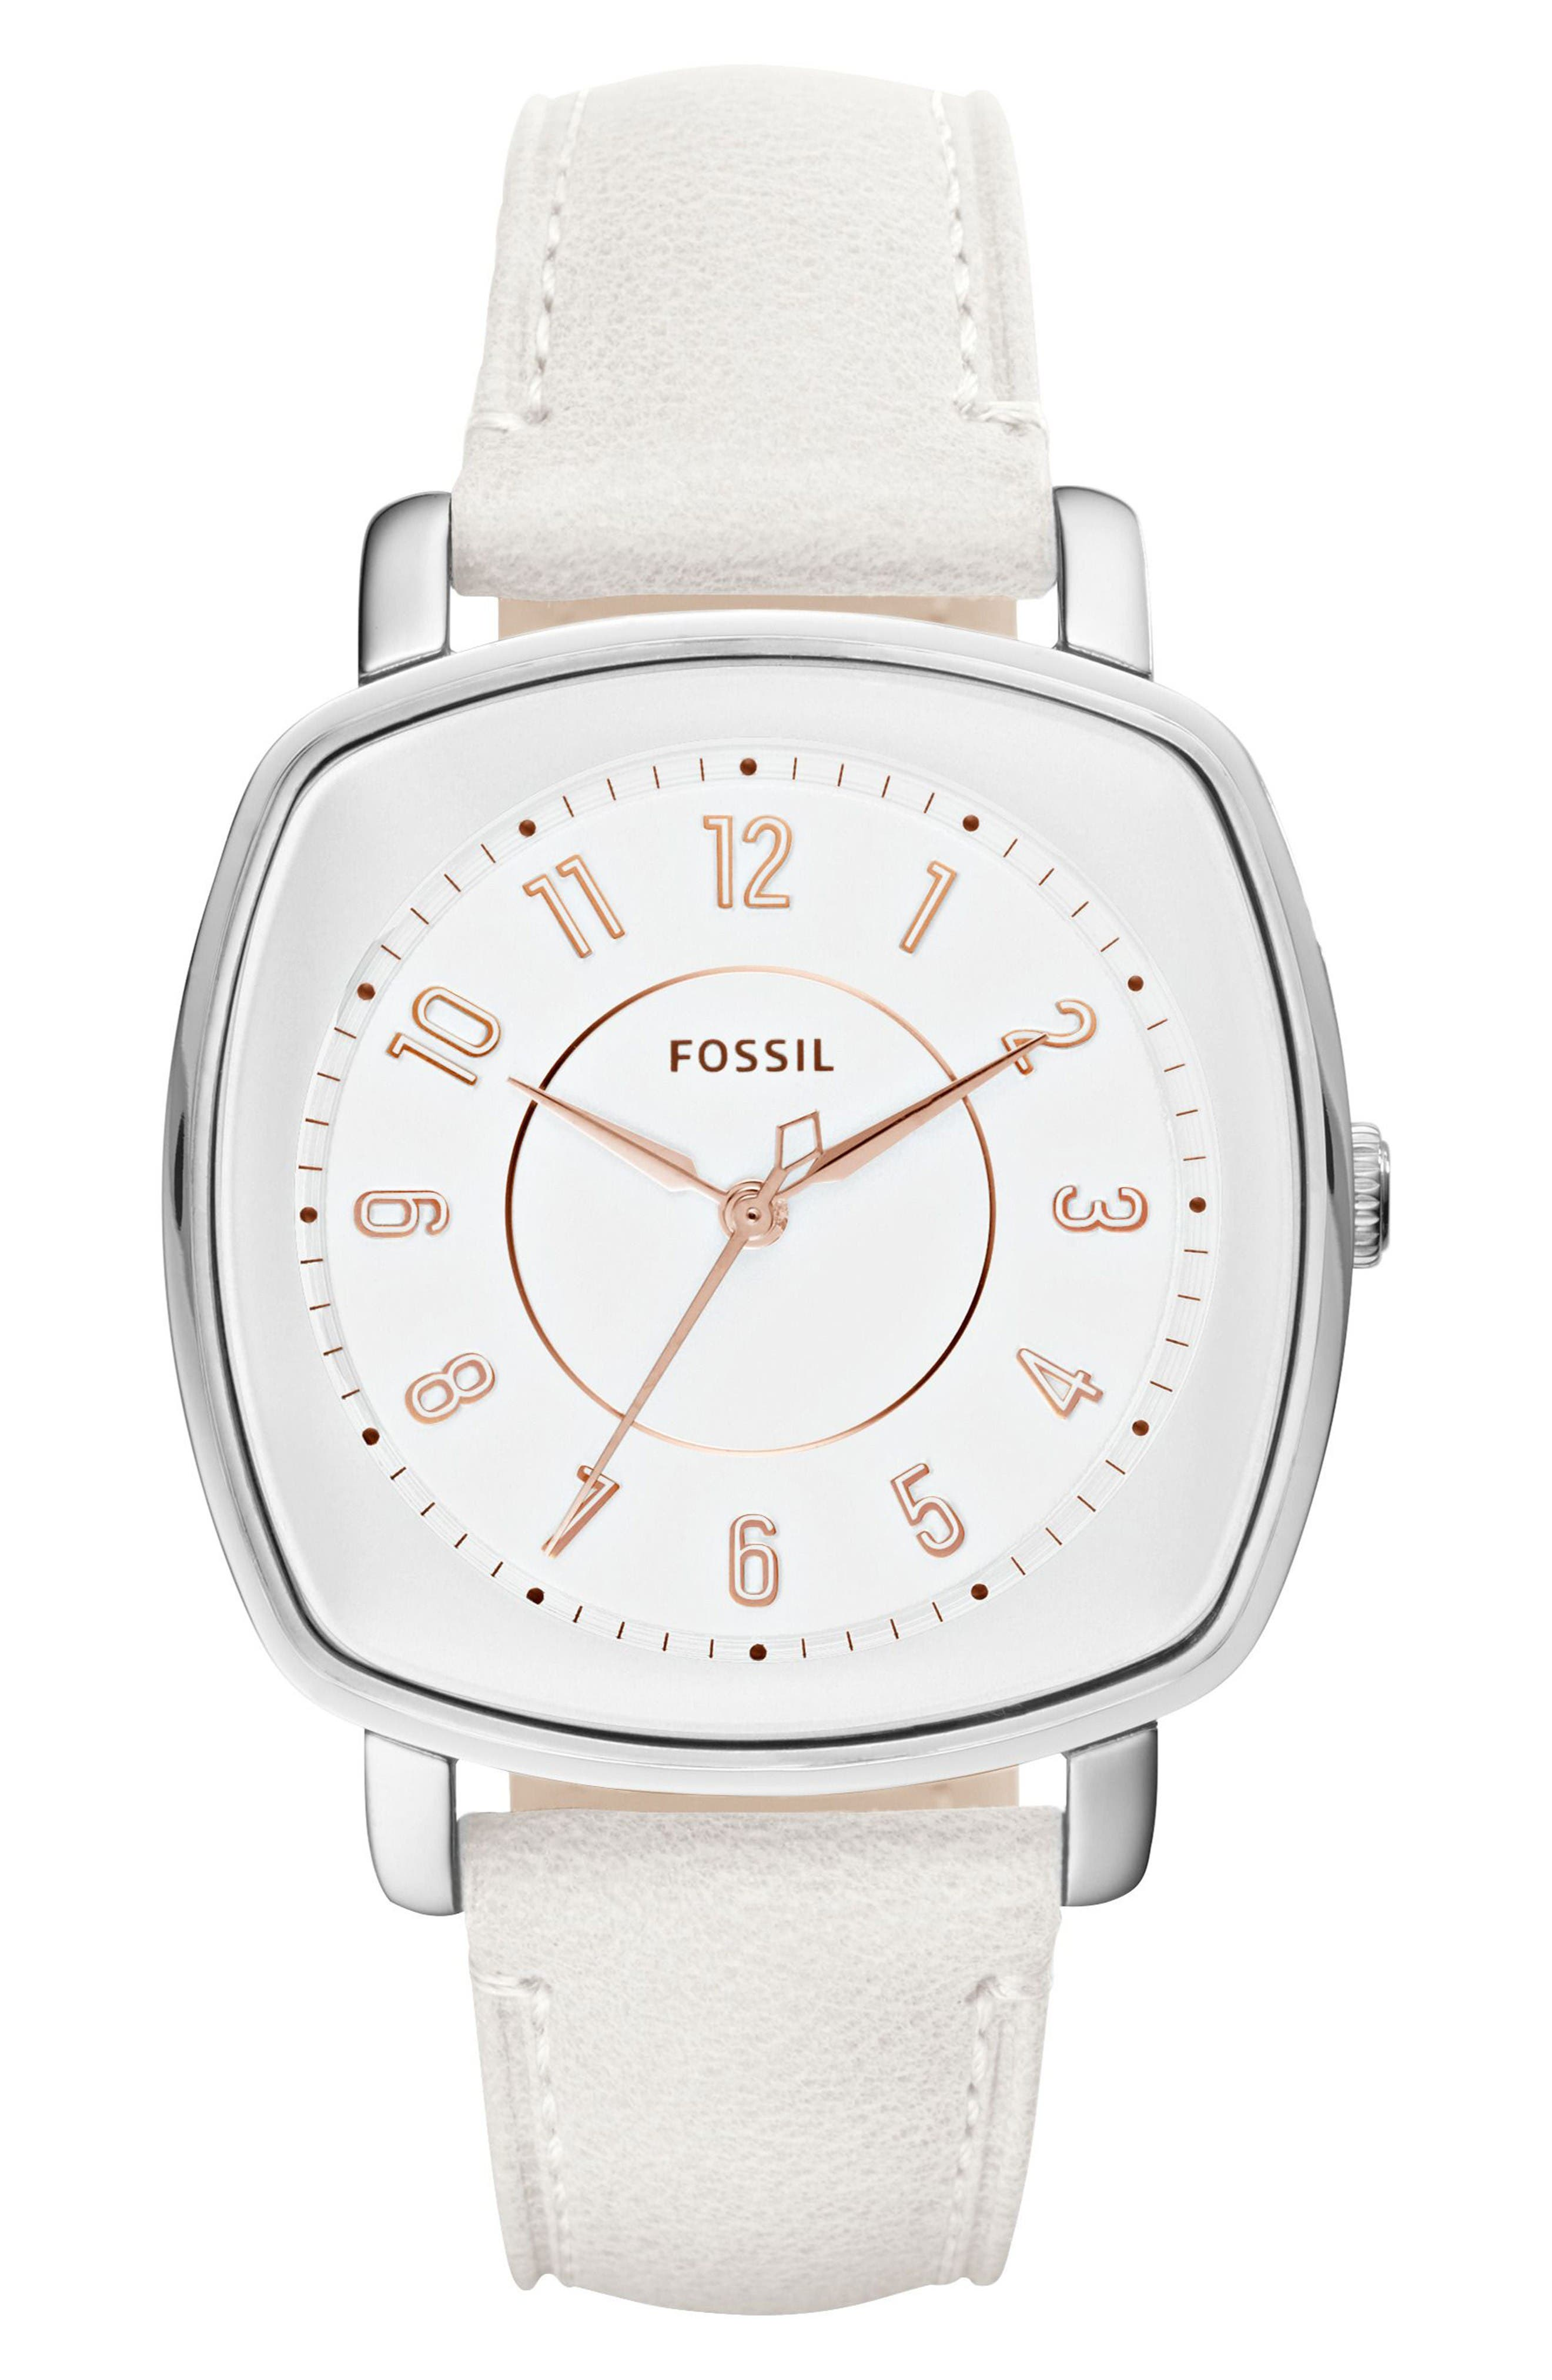 Fossil 'Idealist' Leather Strap Watch, 38mm